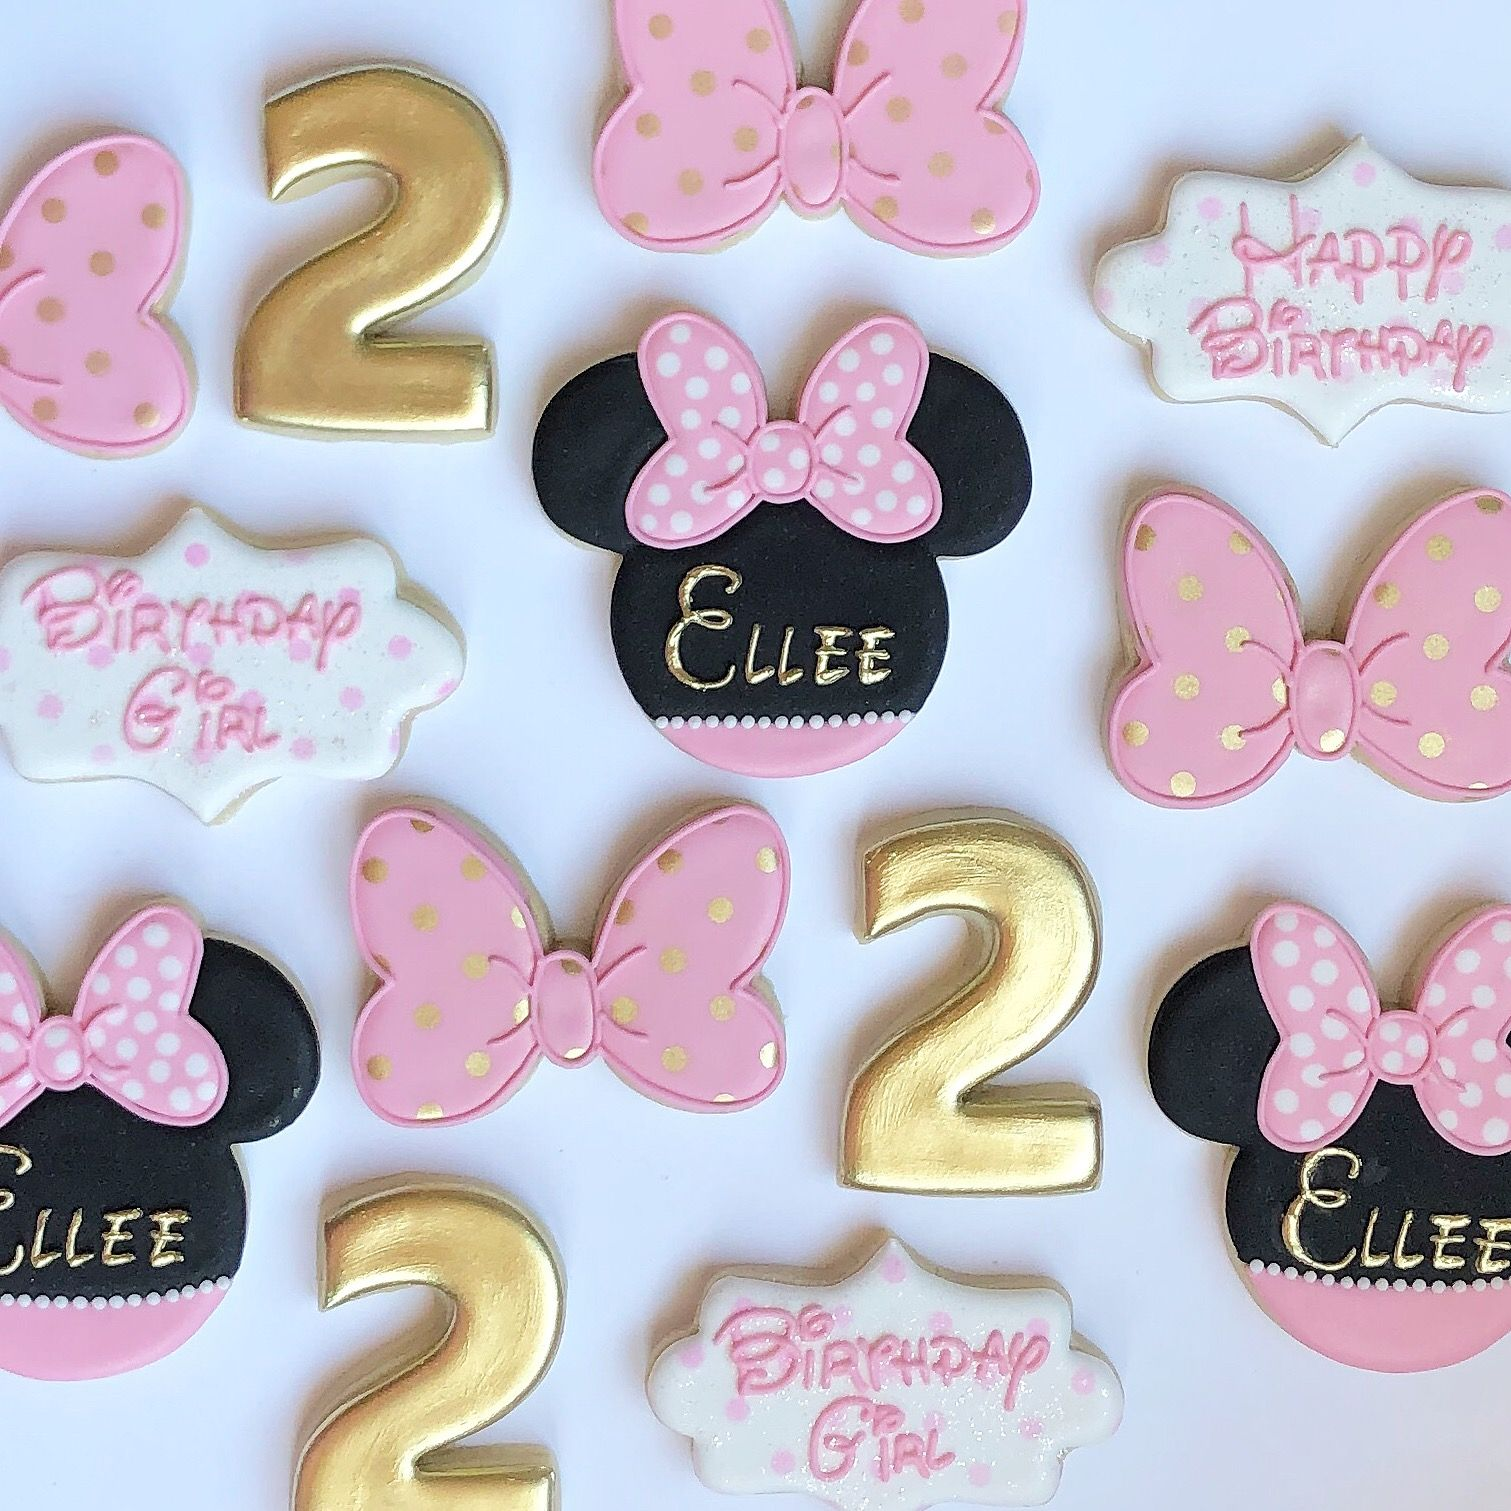 Minnie Mouse royal icing cookies